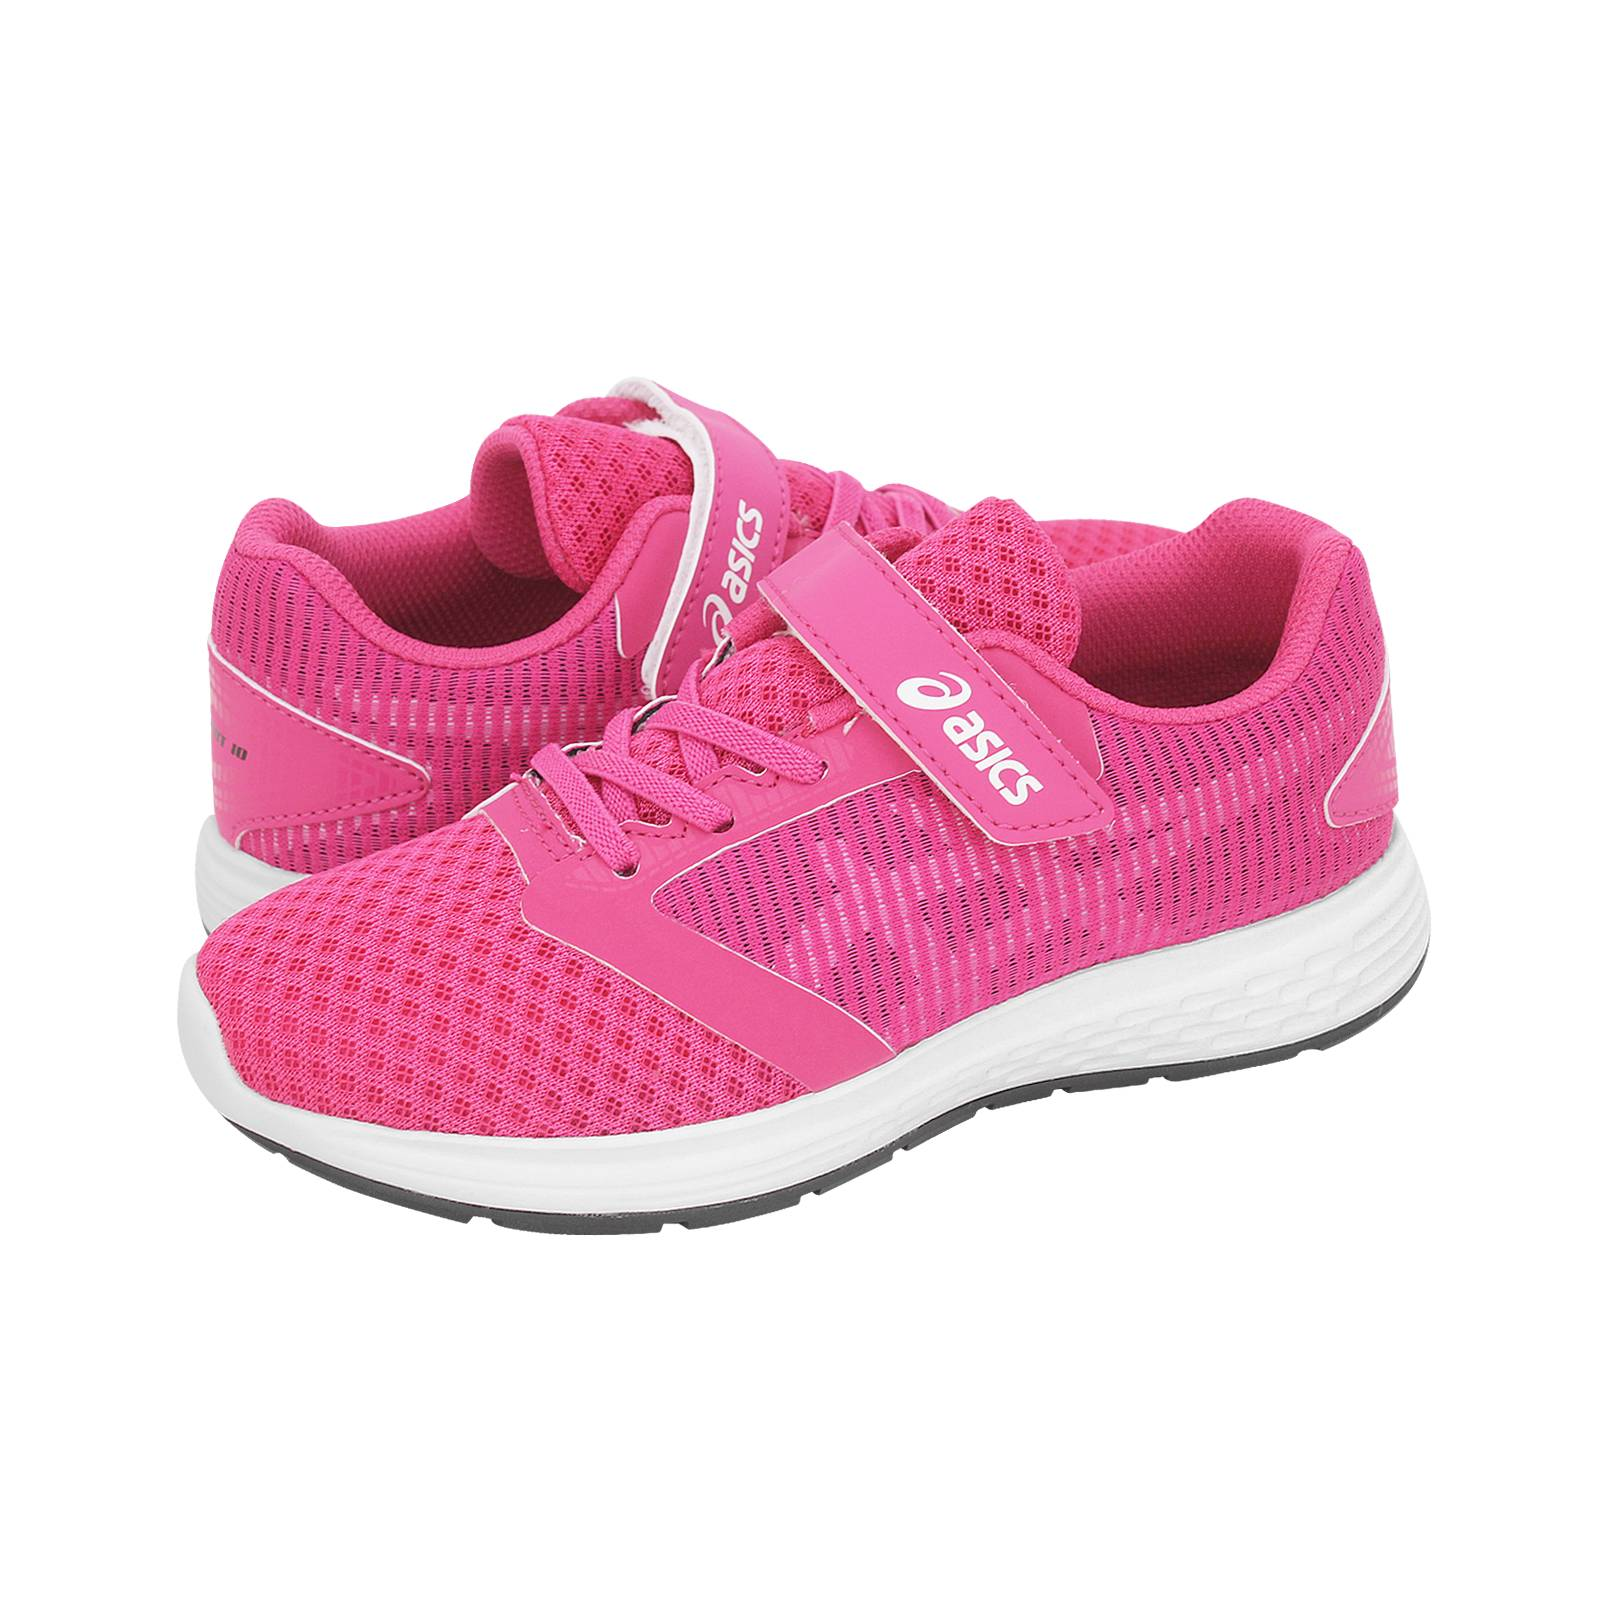 55a7ff741ca Patriot 10 PS - Παιδικά αθλητικά παπούτσια Asics από υφασμα και ...